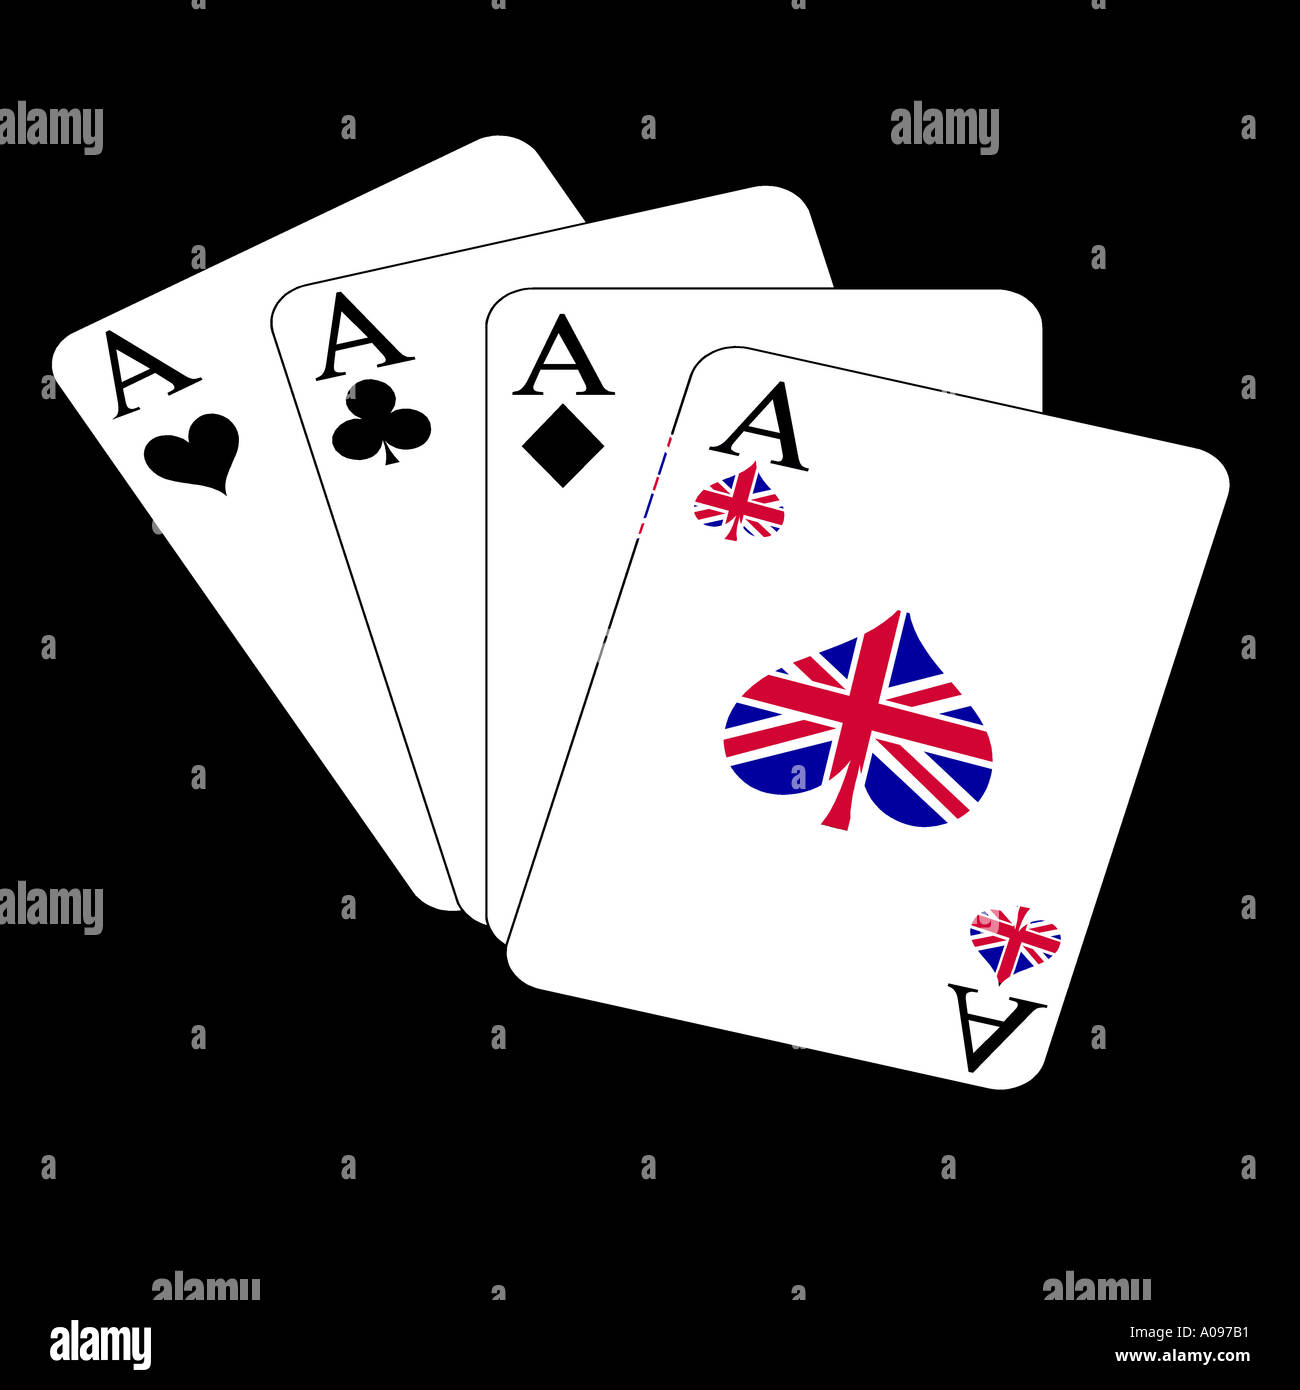 4 aces one signed with the flag of the United kingdom trumpcard winner card leading - Stock Image